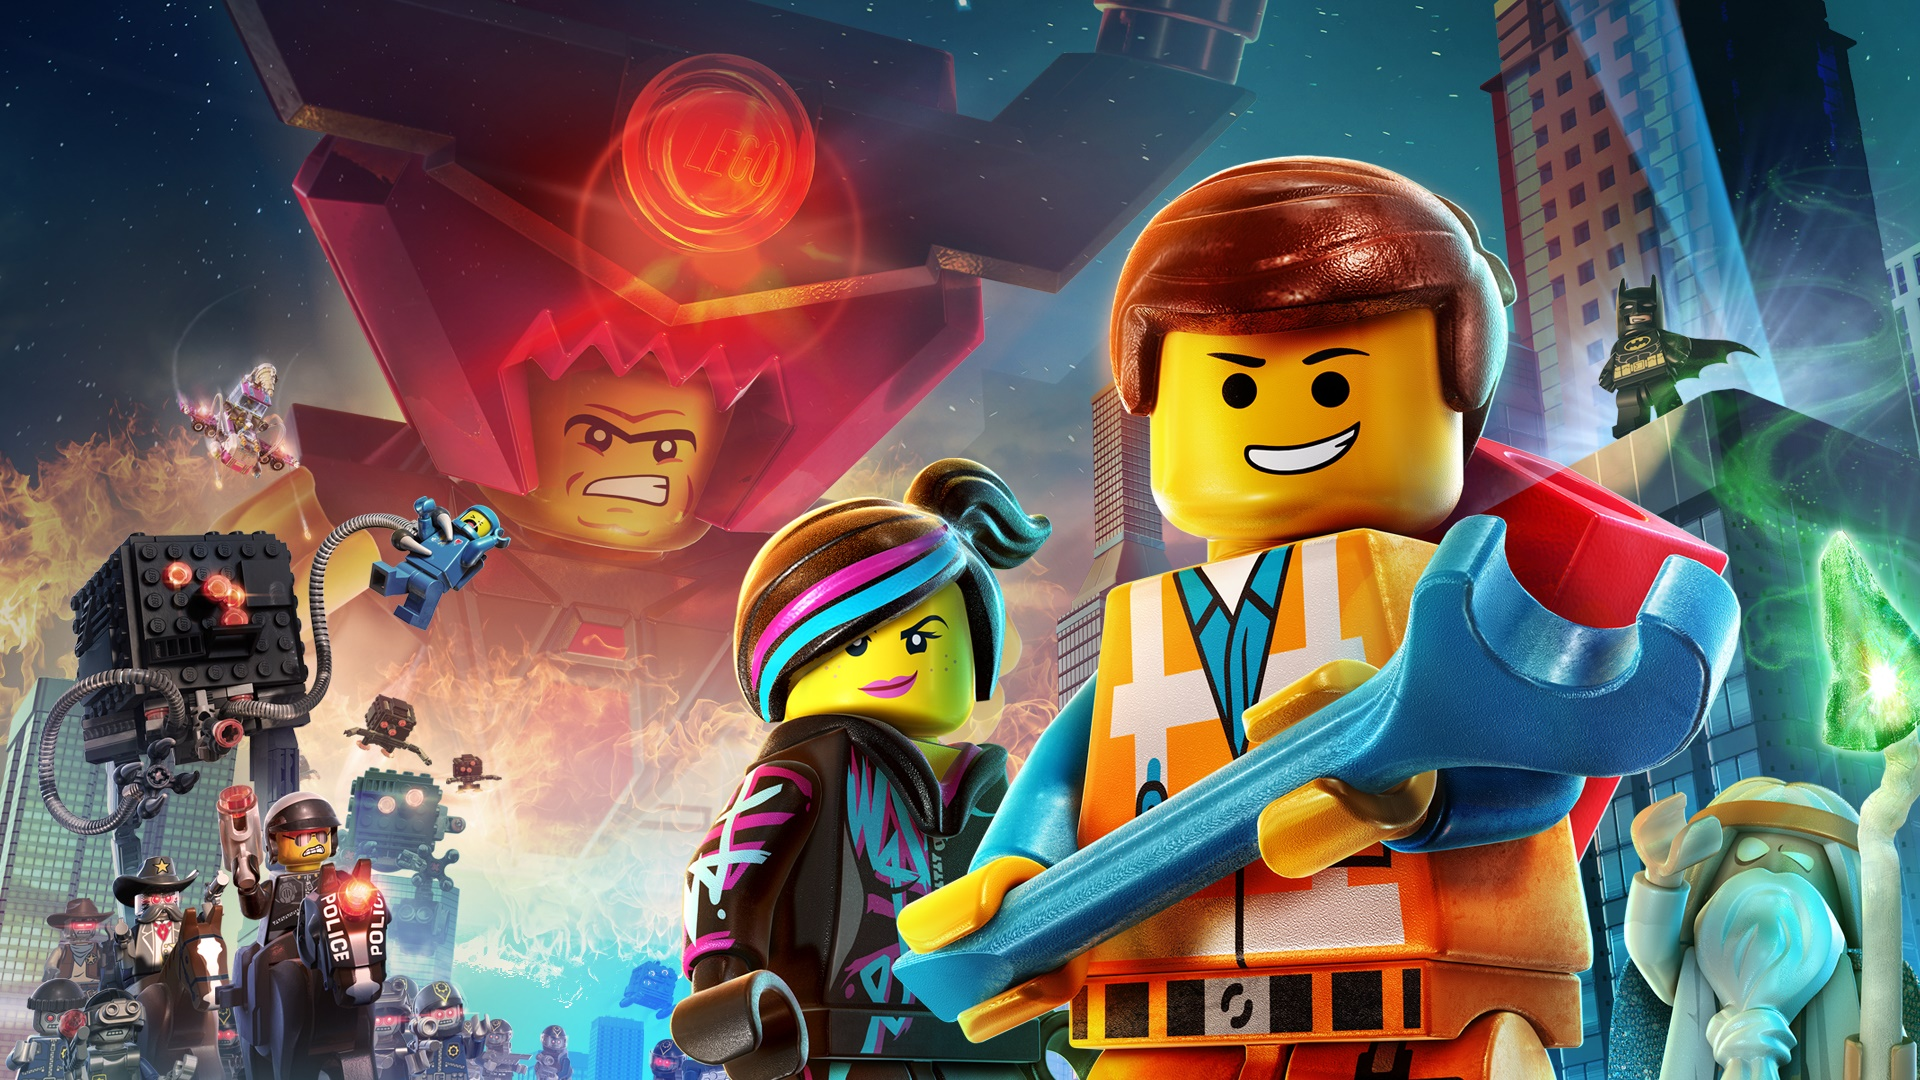 The Lego Movie 2014 Movie 4146930 1920x1080 All For